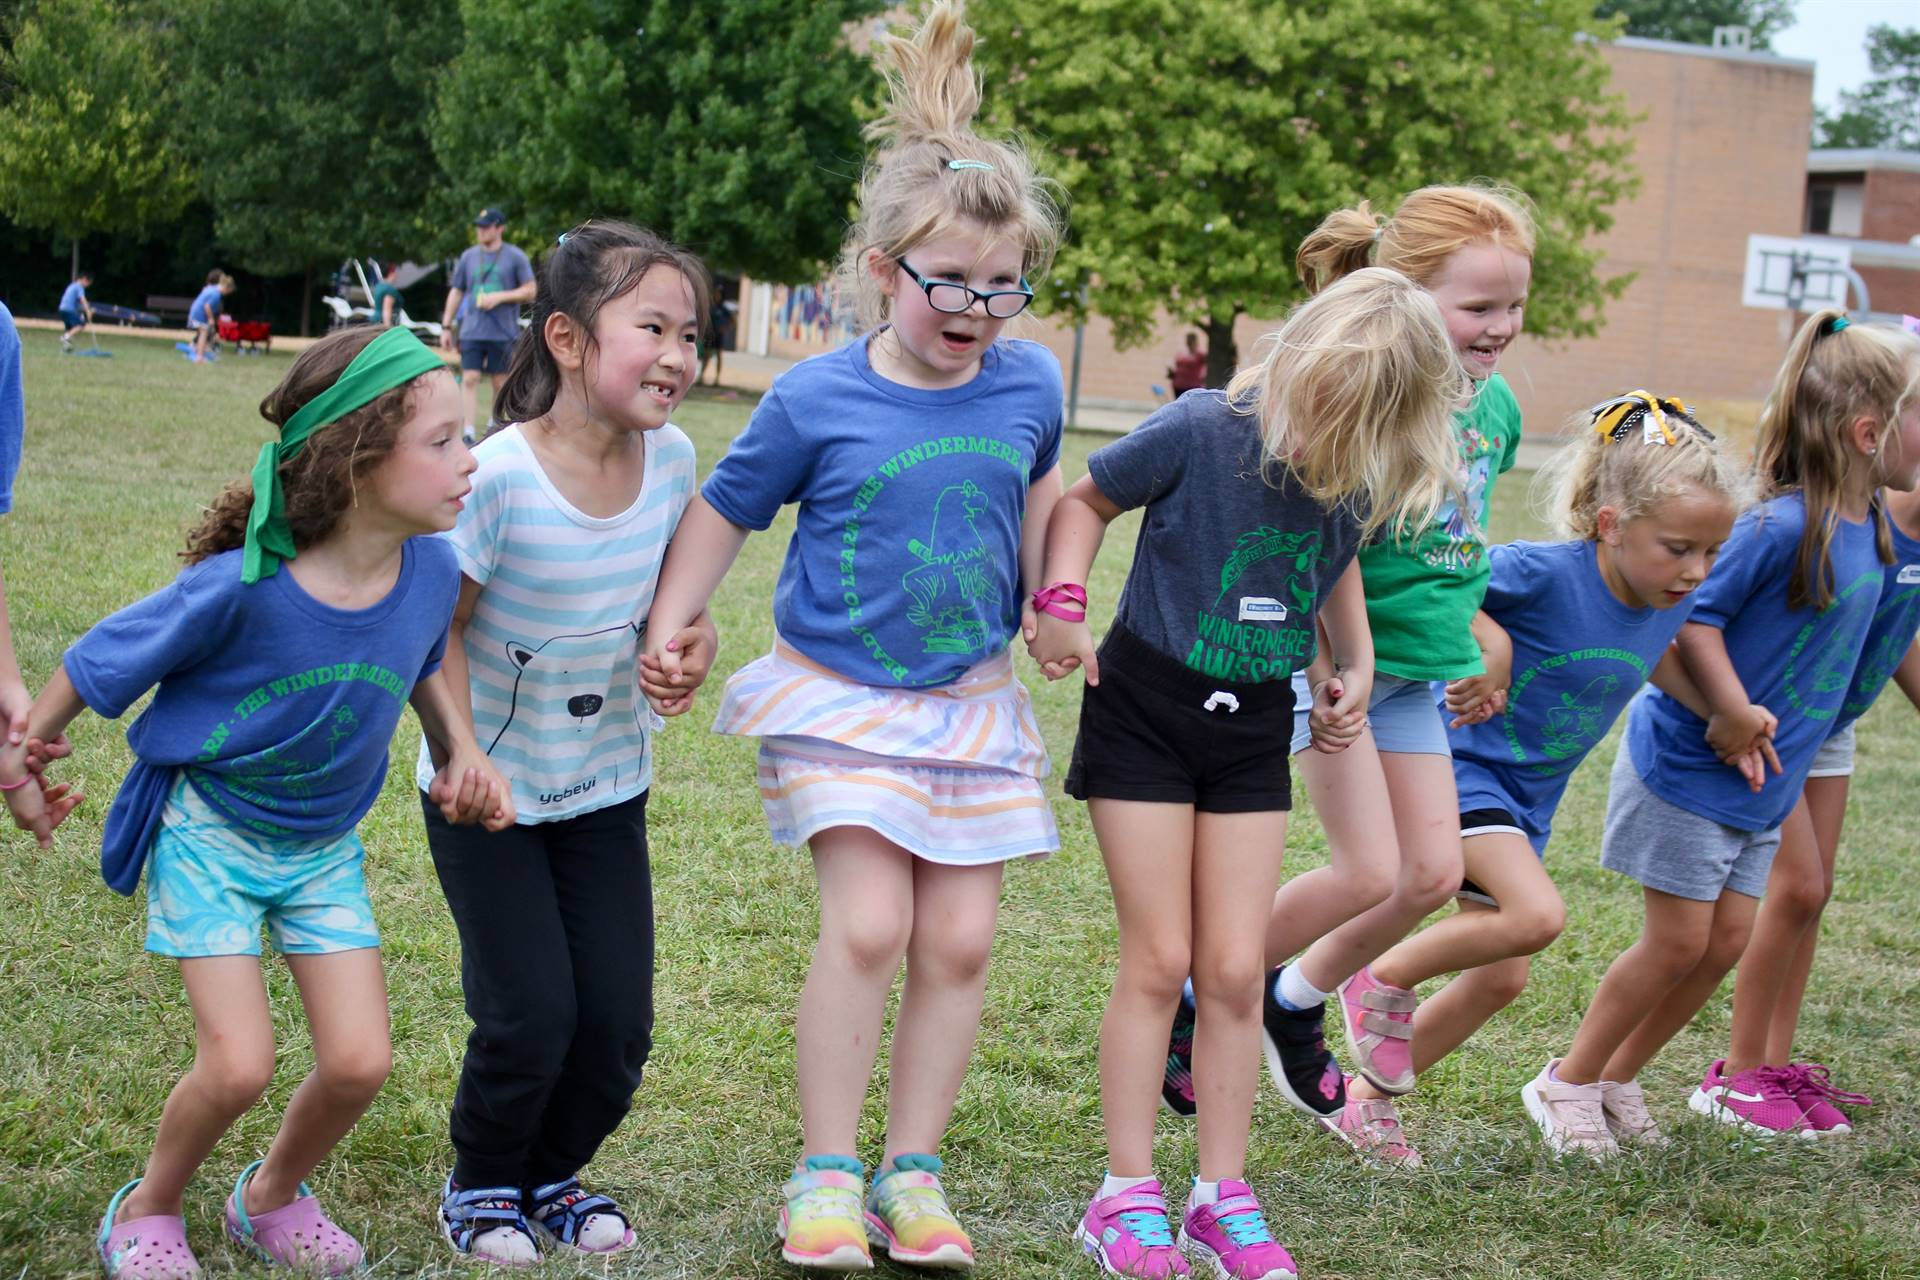 Girls jumping in a line during a field day